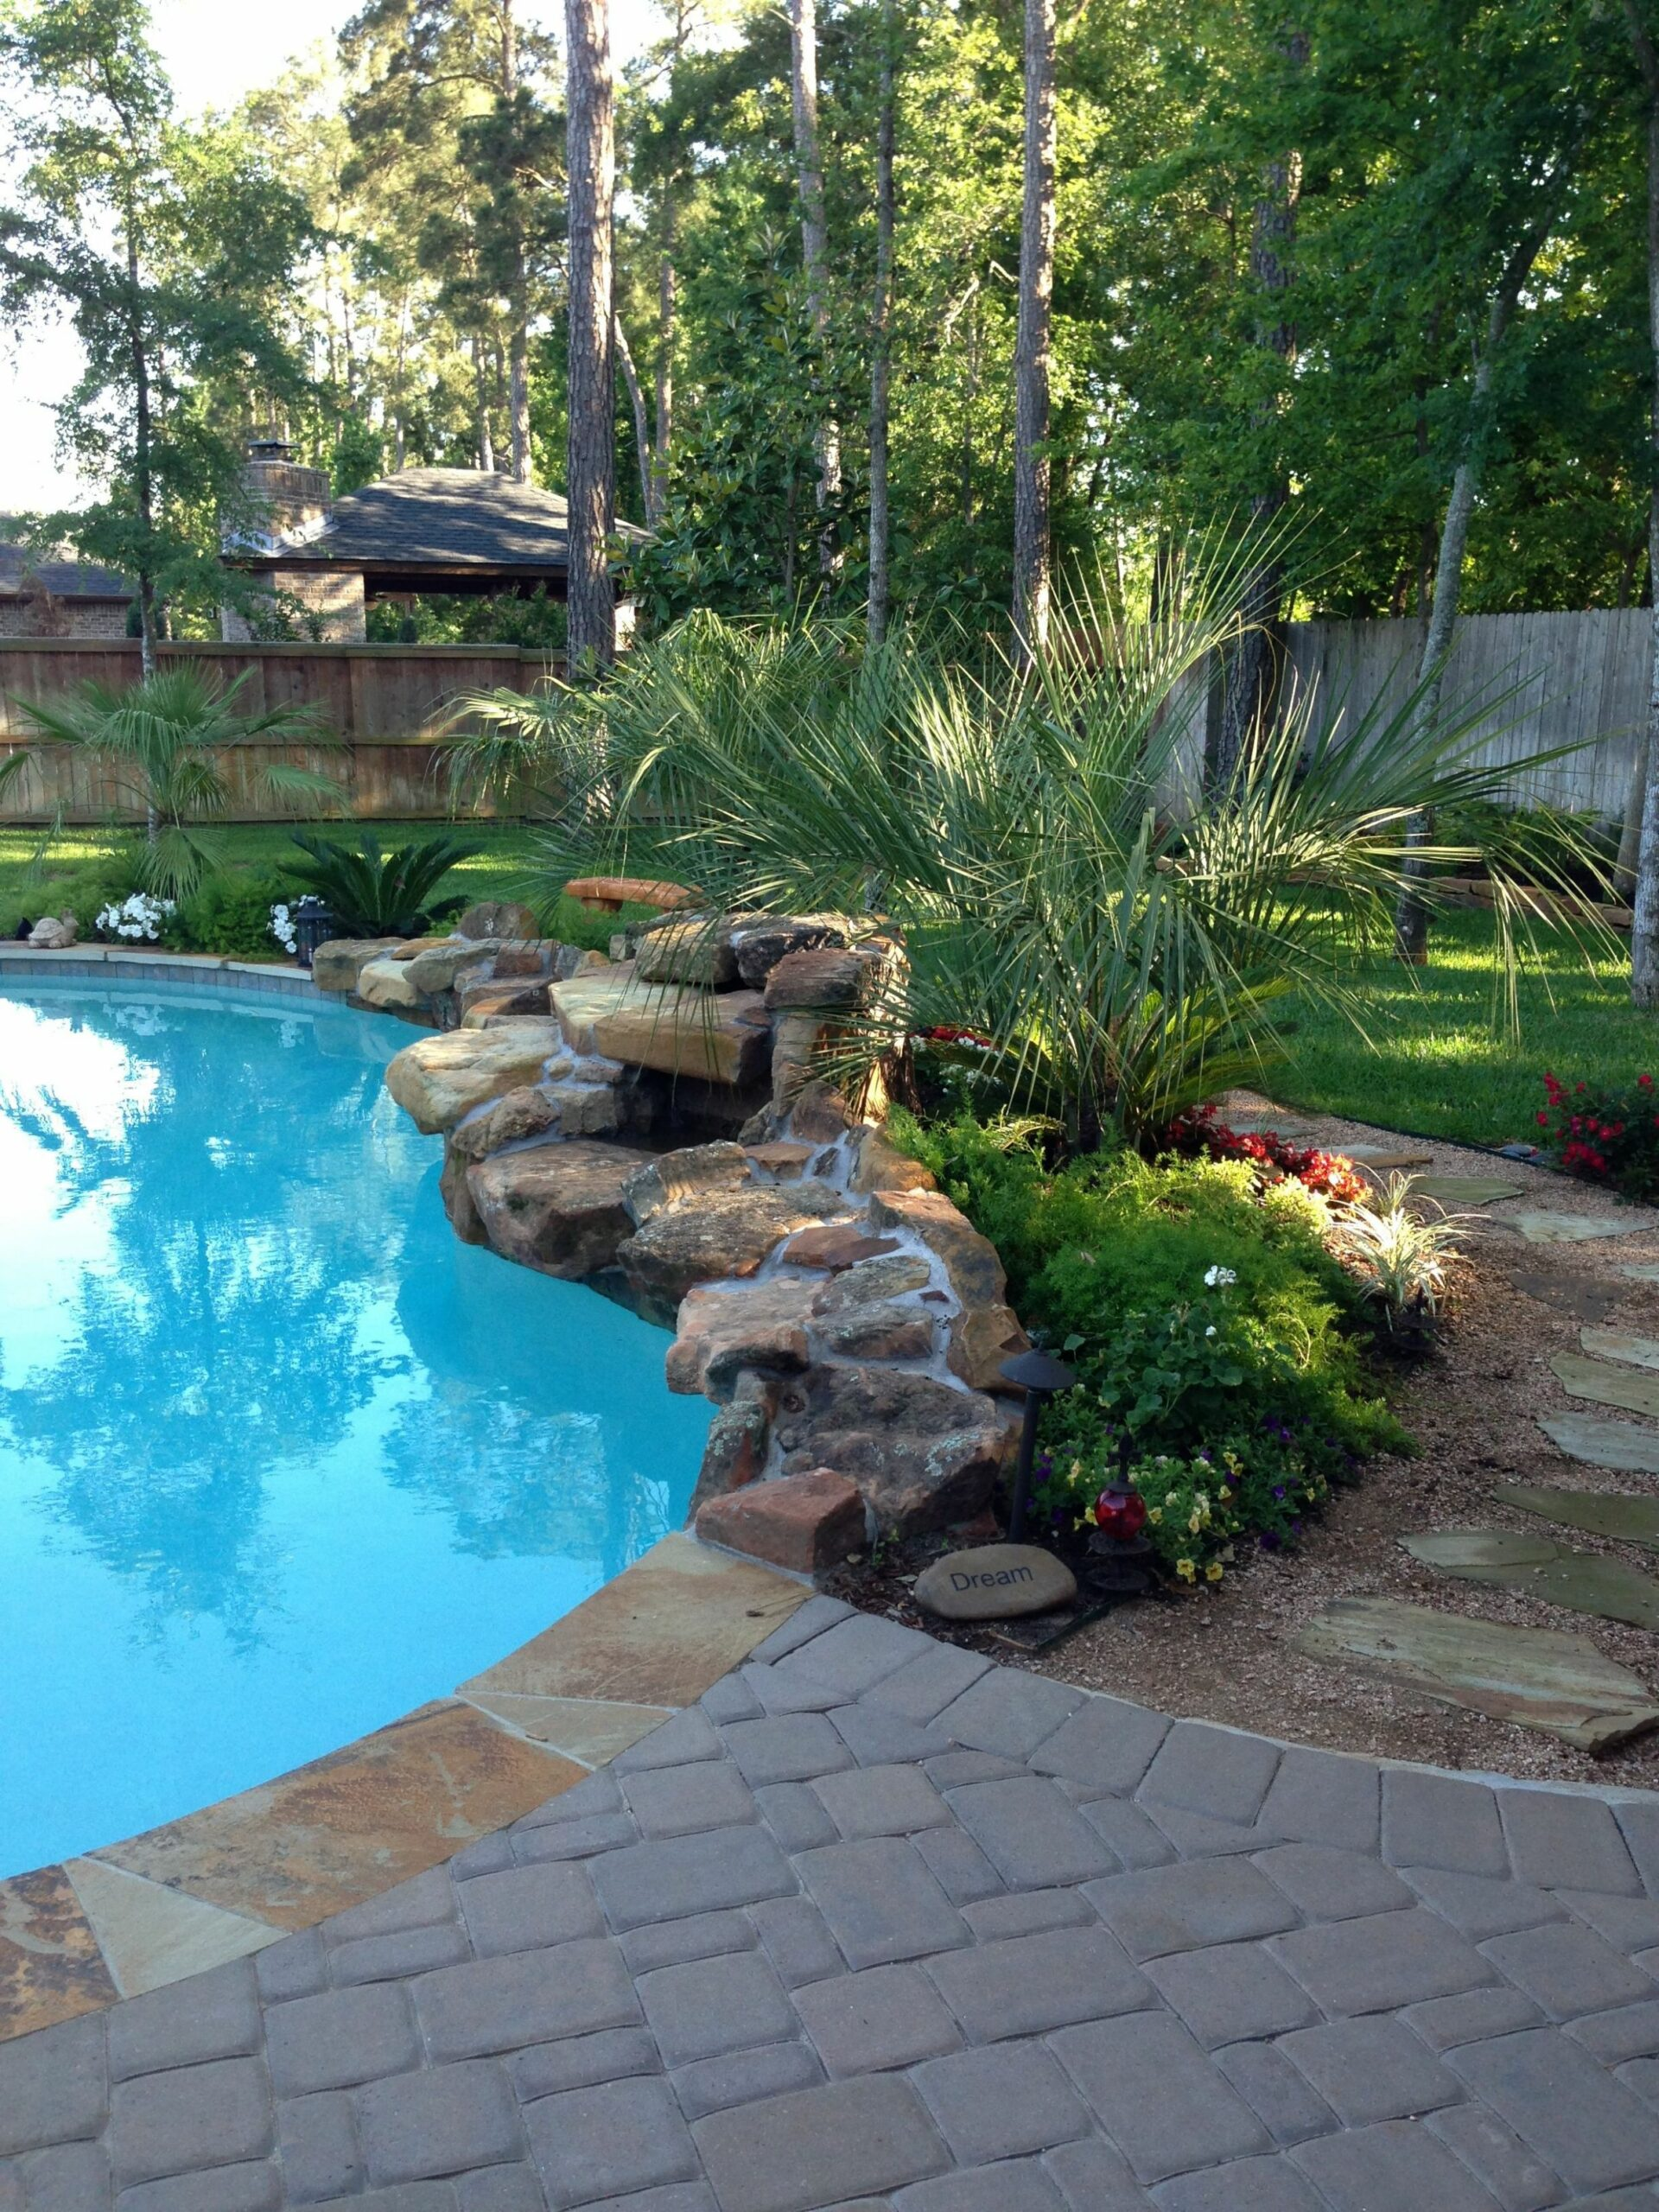 Pool Landscaping: rock waterfall in front of flowering plants ..